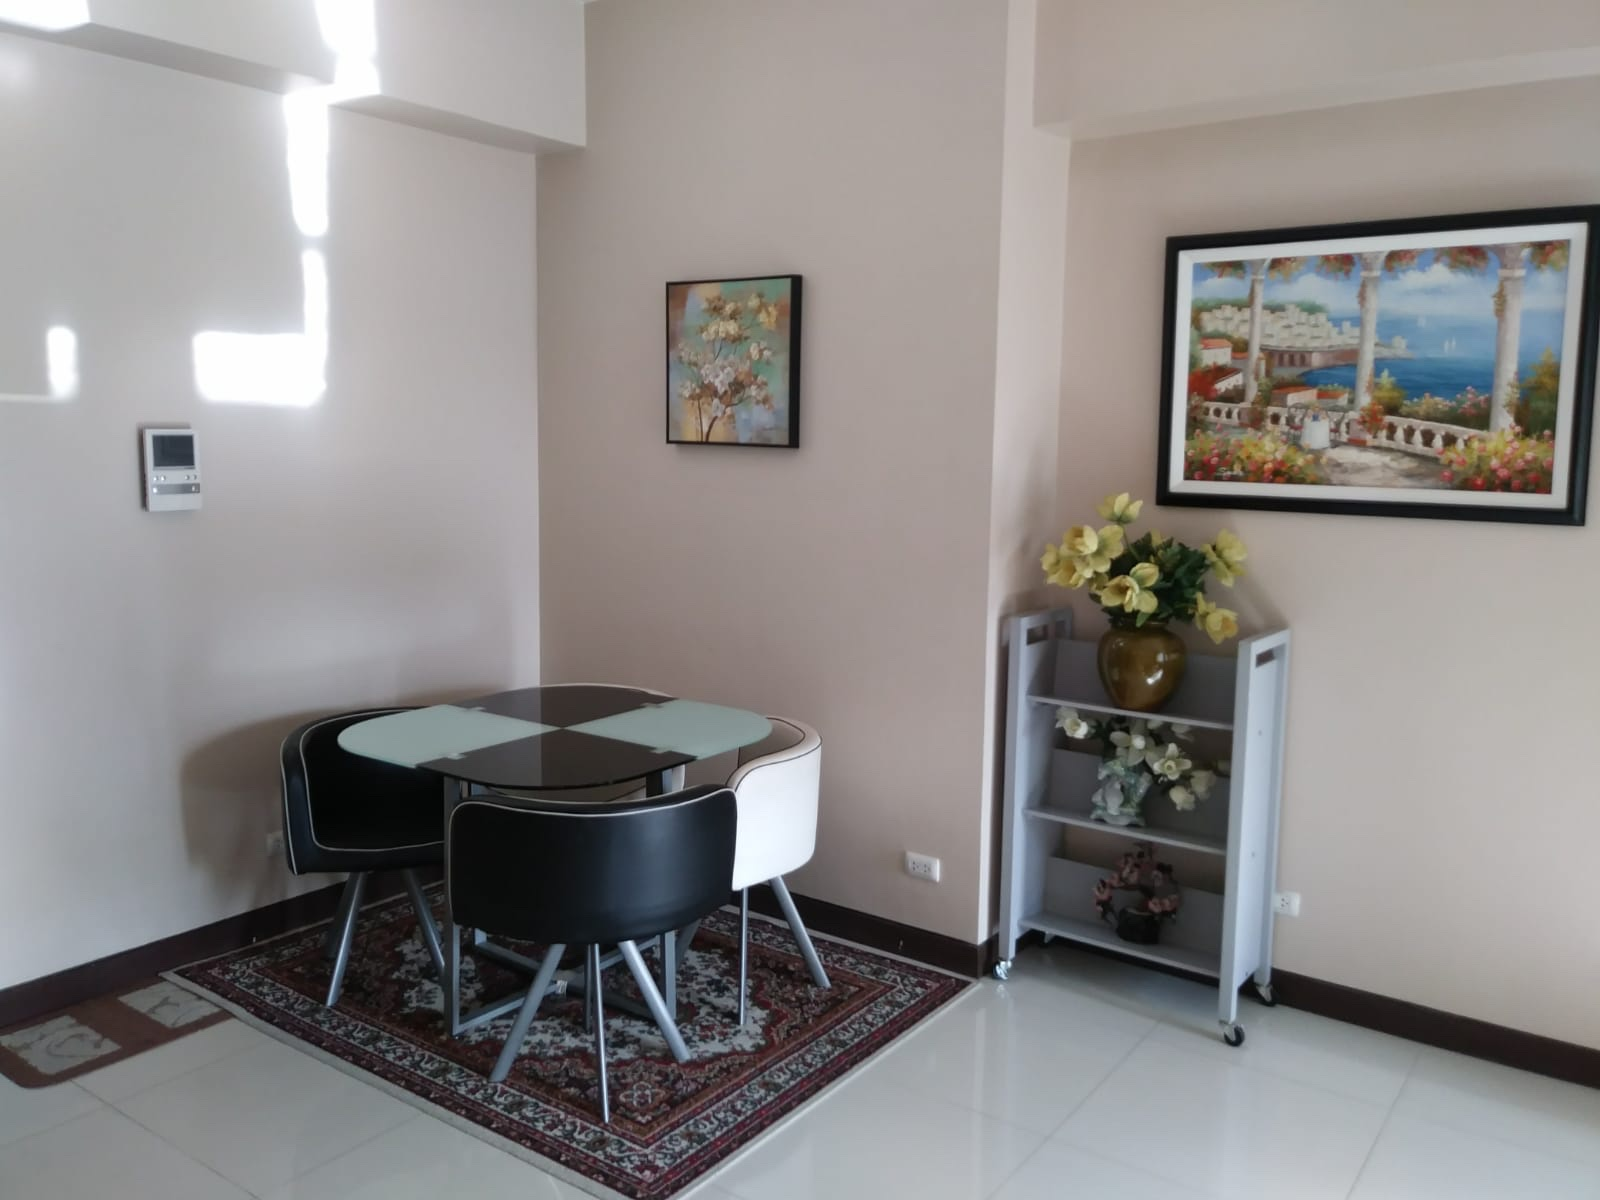 1 Bedroom Condo For Sale at 8 Forbestown Road, BGC, Taguig City 4